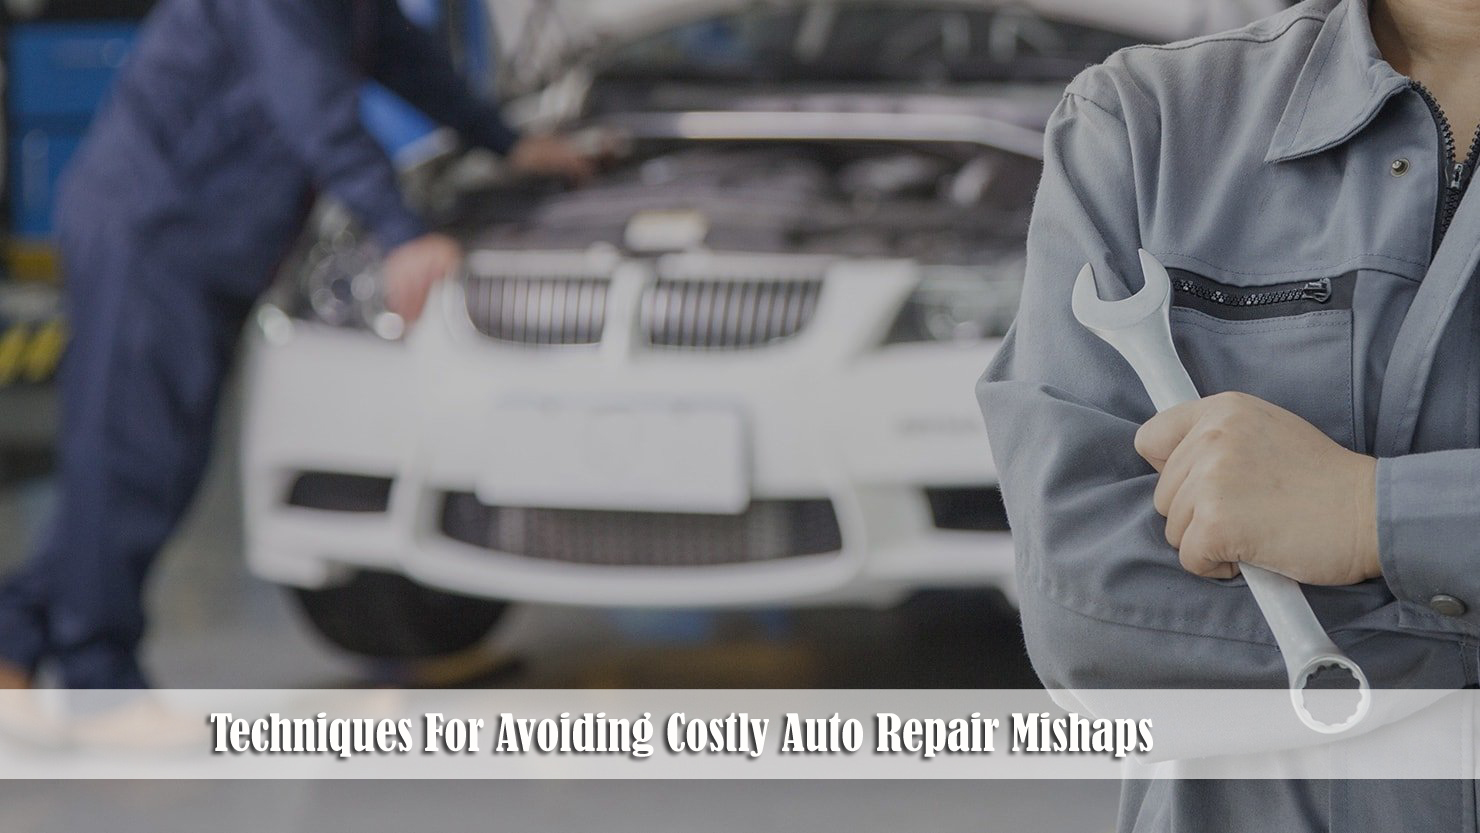 Techniques For Avoiding Costly Auto Repair Mishaps